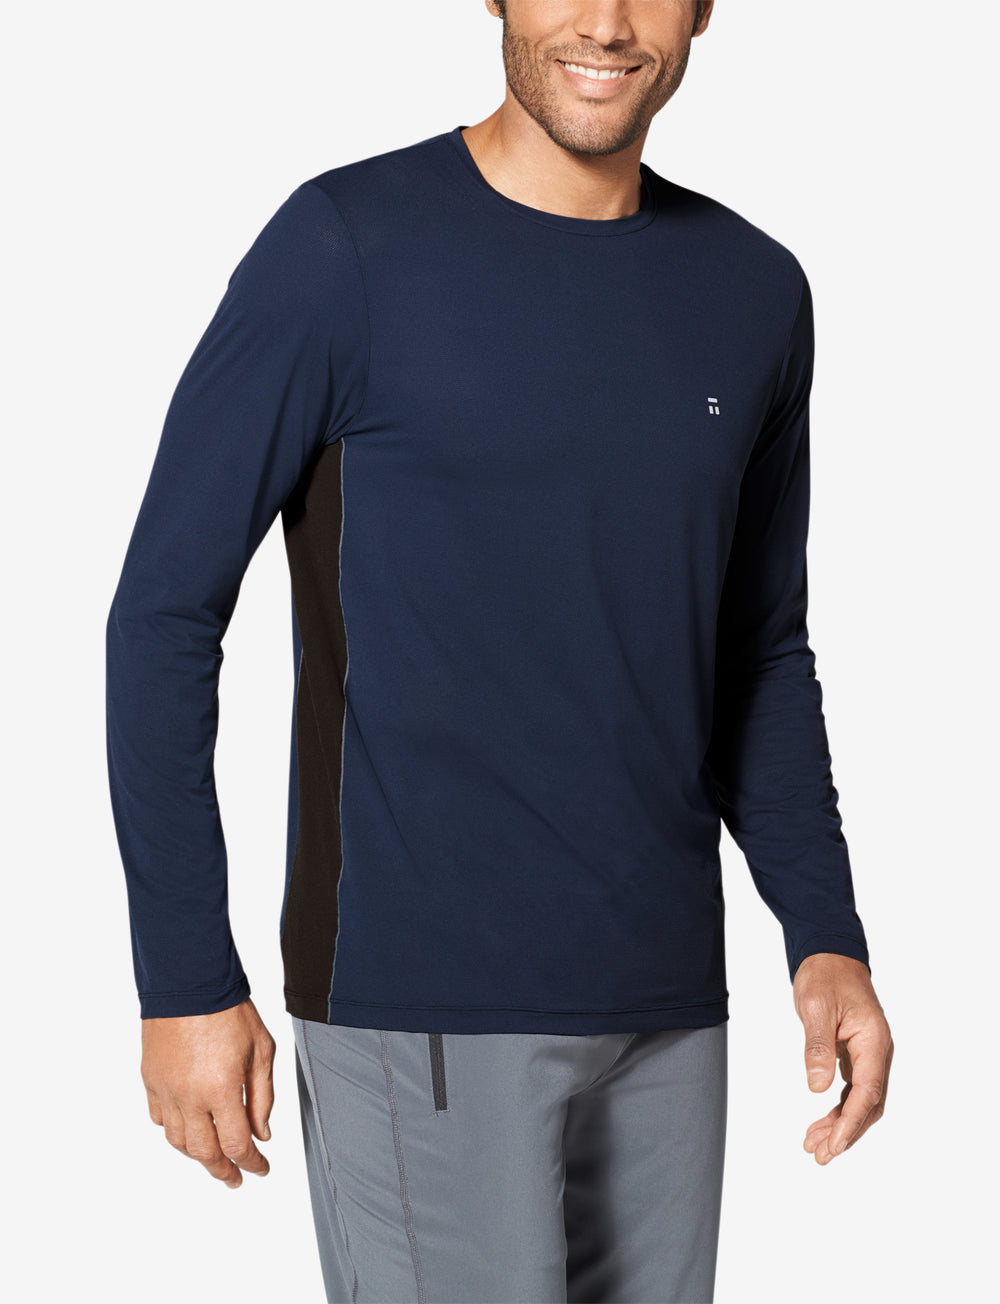 Air Mesh Performance Long Sleeve Details Image